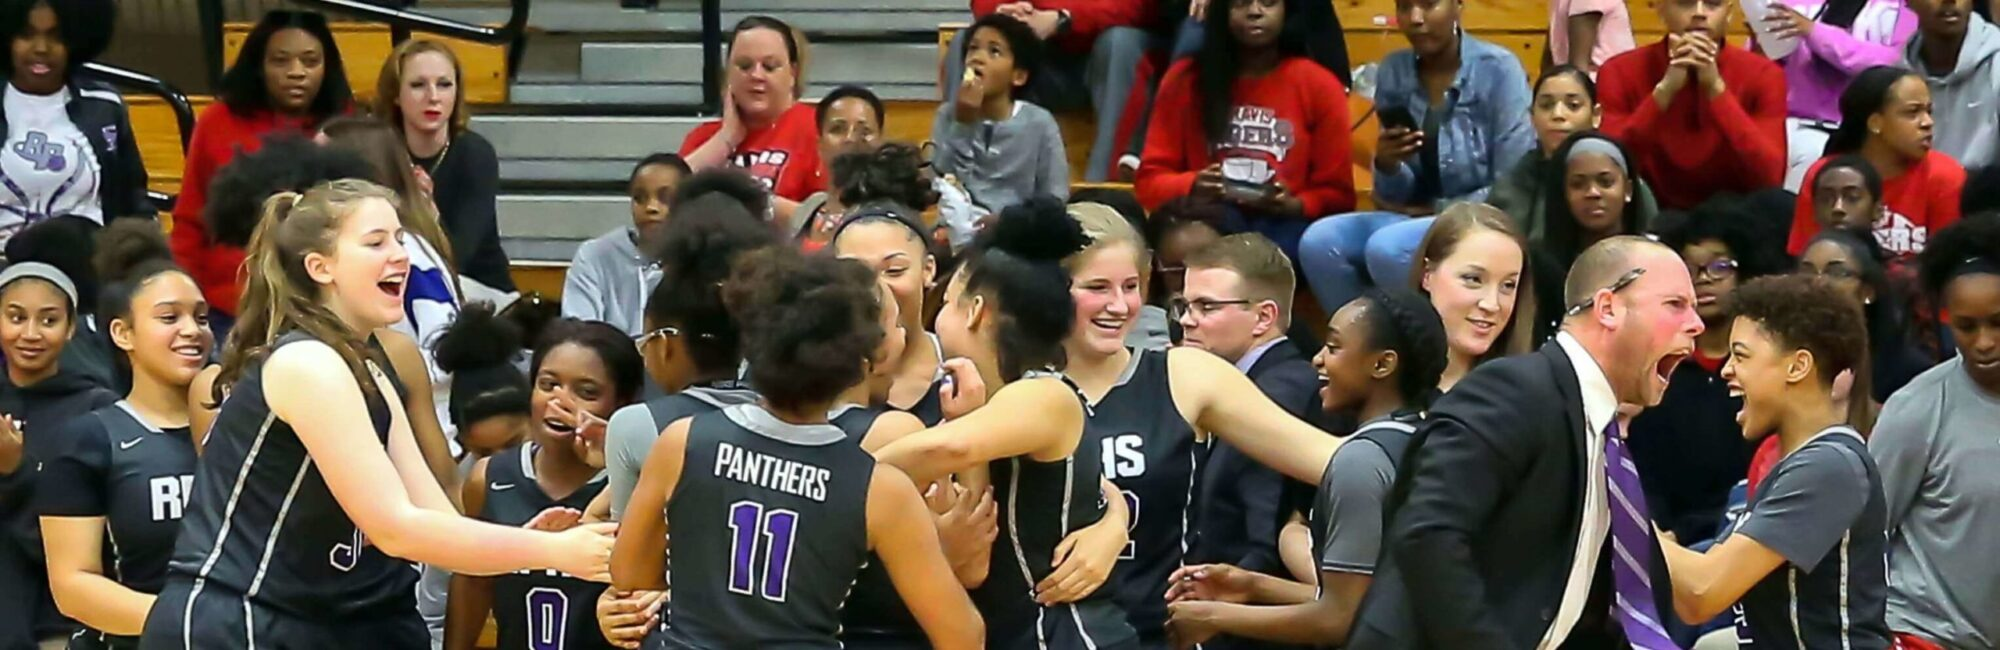 ridge point girls basketball